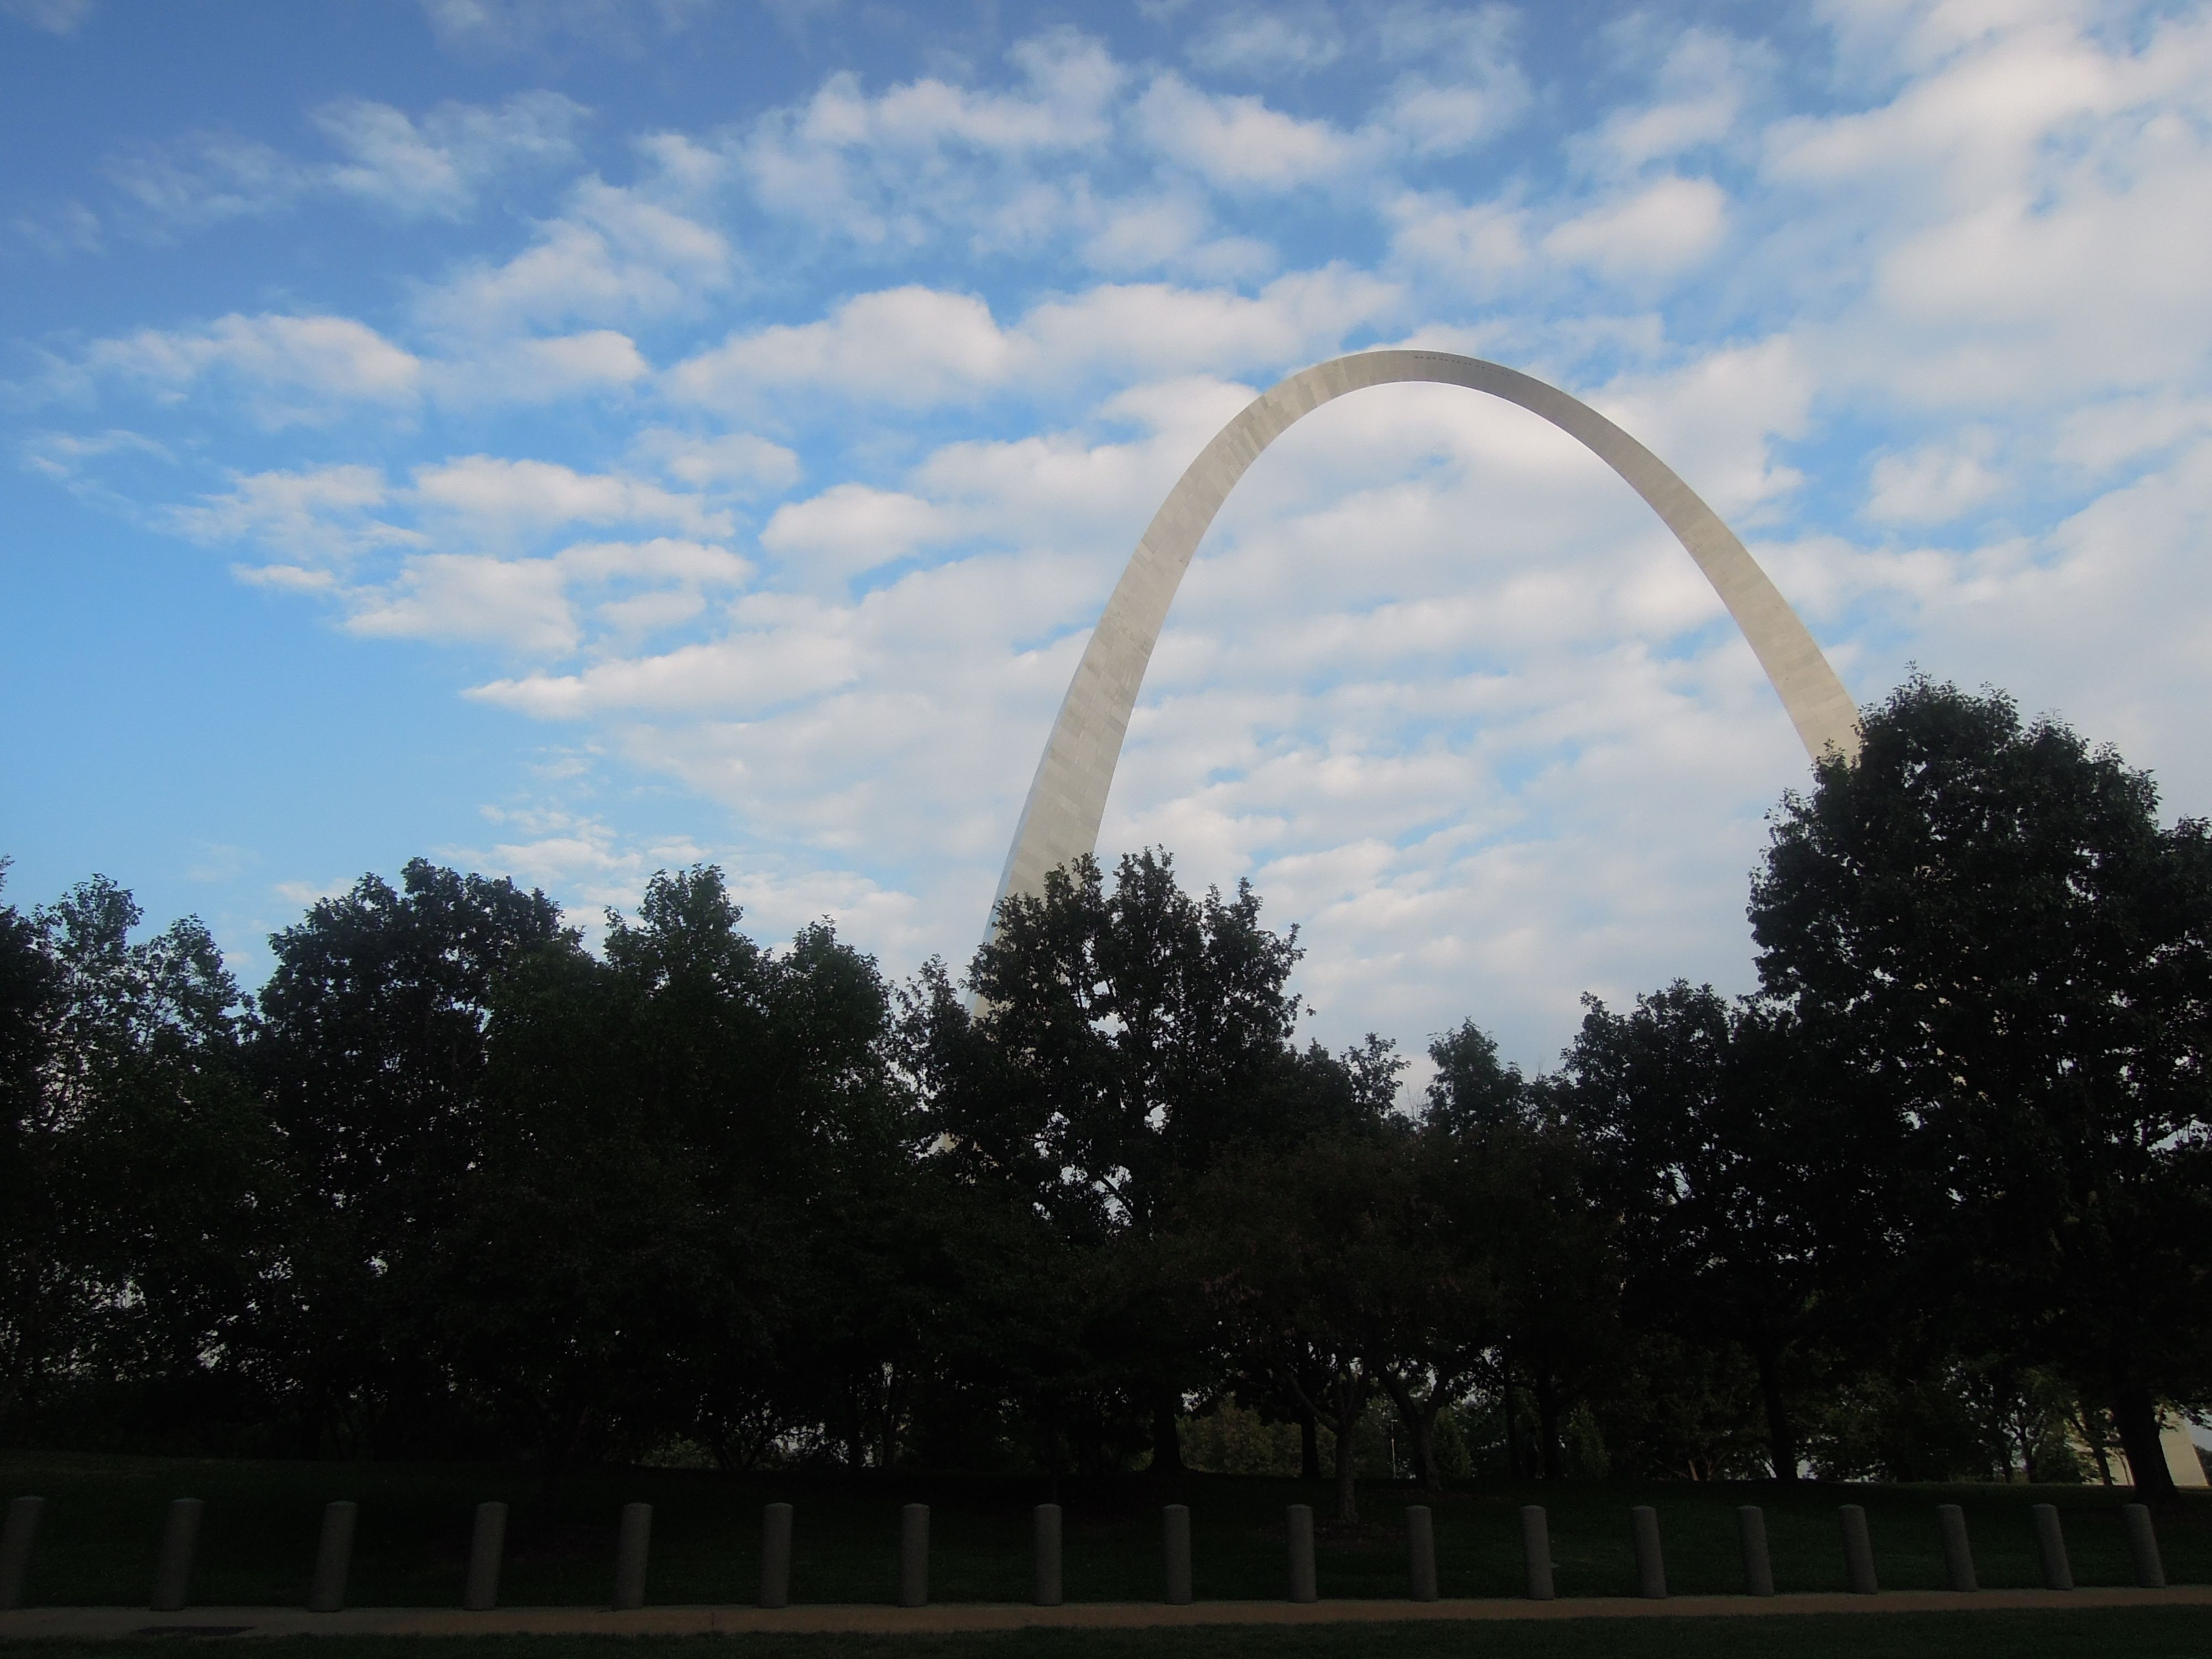 Stlouis the arch saw that as I motored by on the Mississippi River